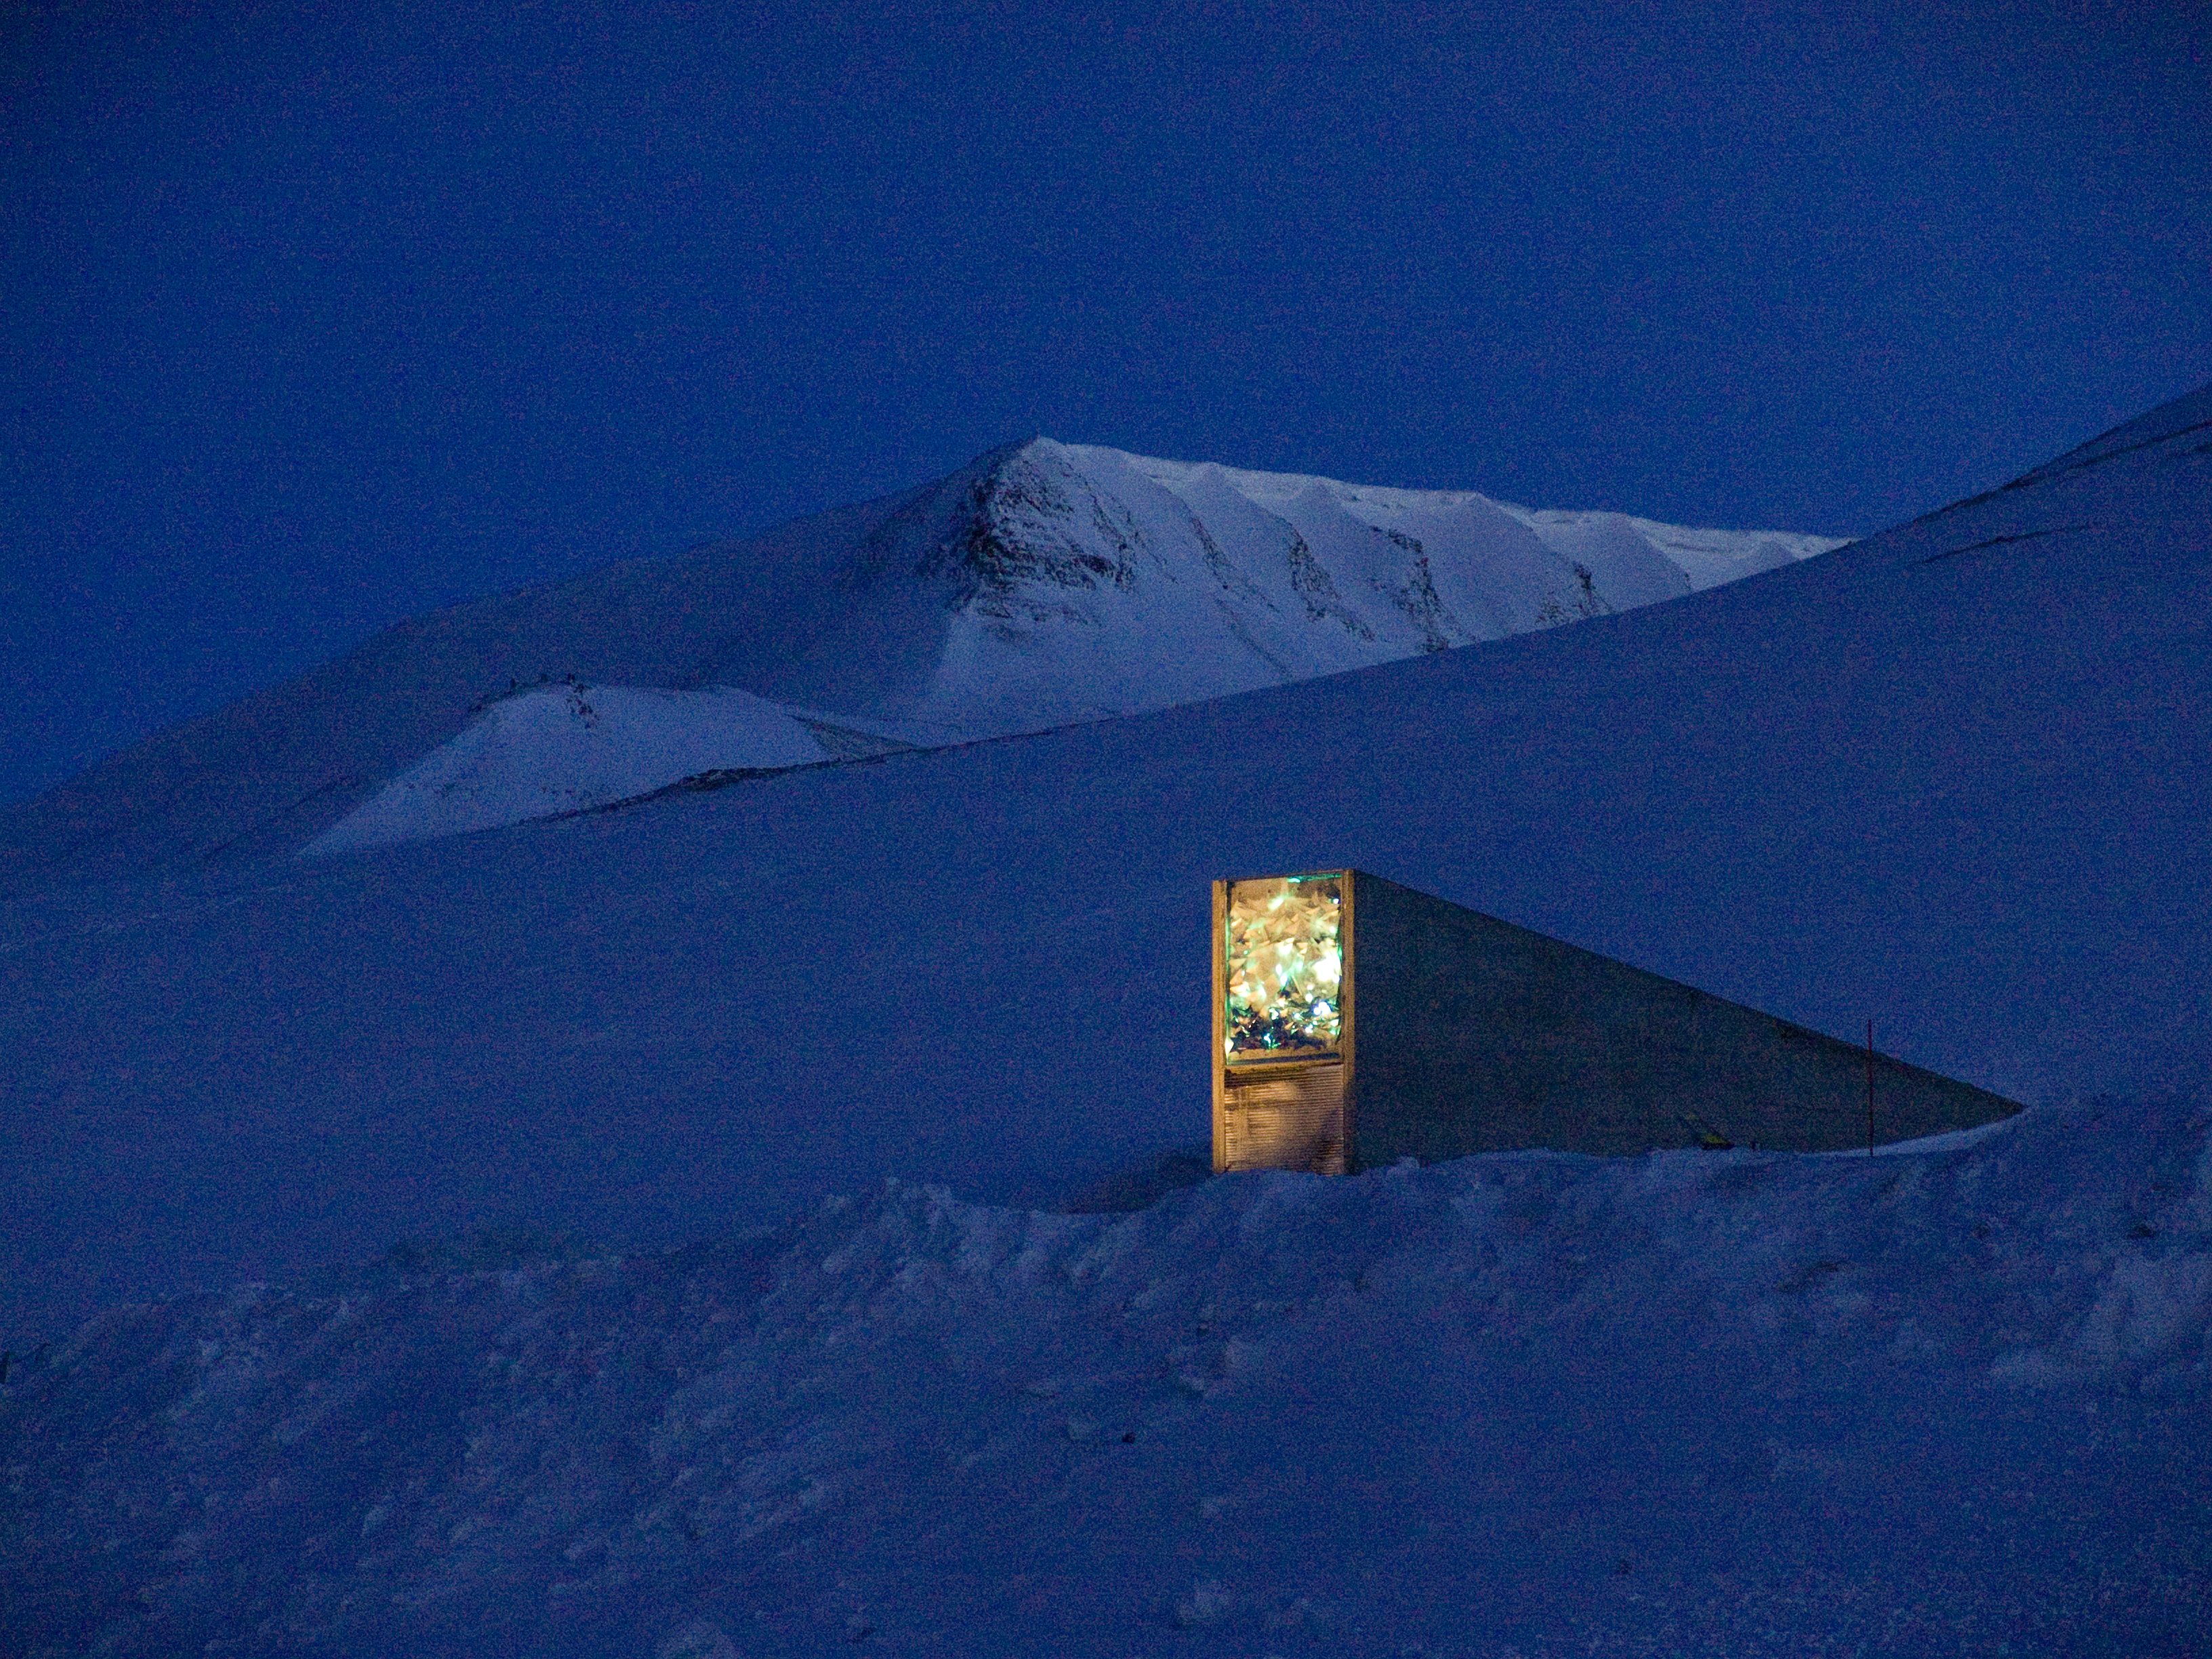 The Doomsday Seed Vault Is Meeting Its Doom Sooner Than Expected